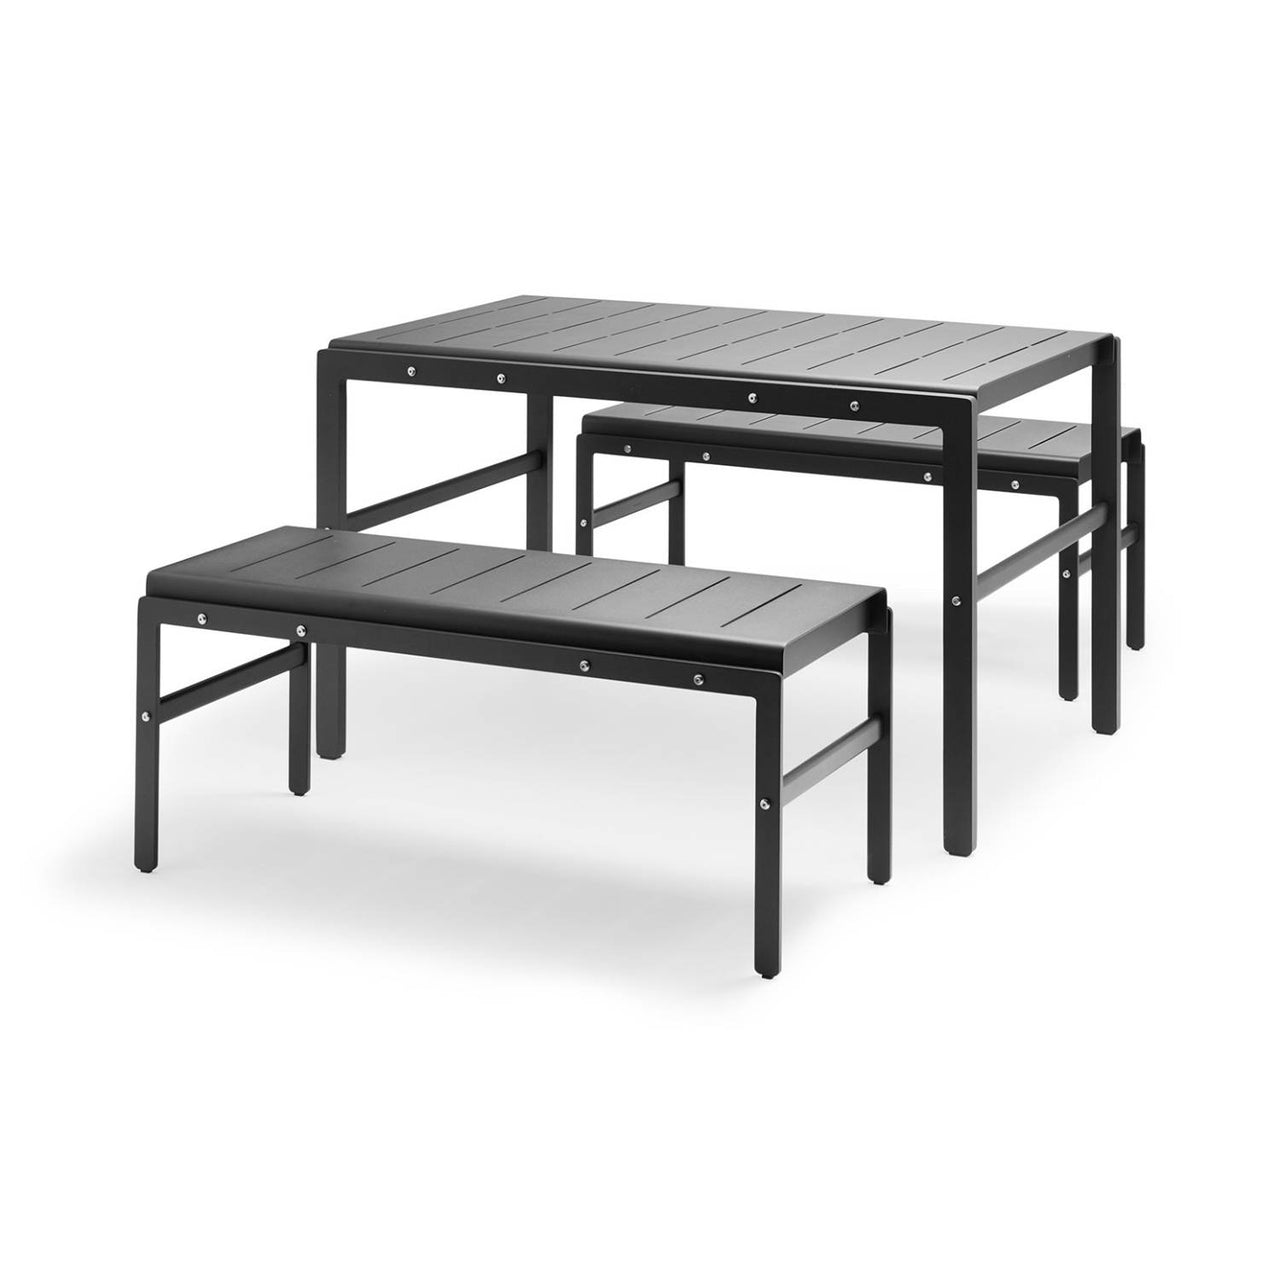 Reform Table: Anthracite Black